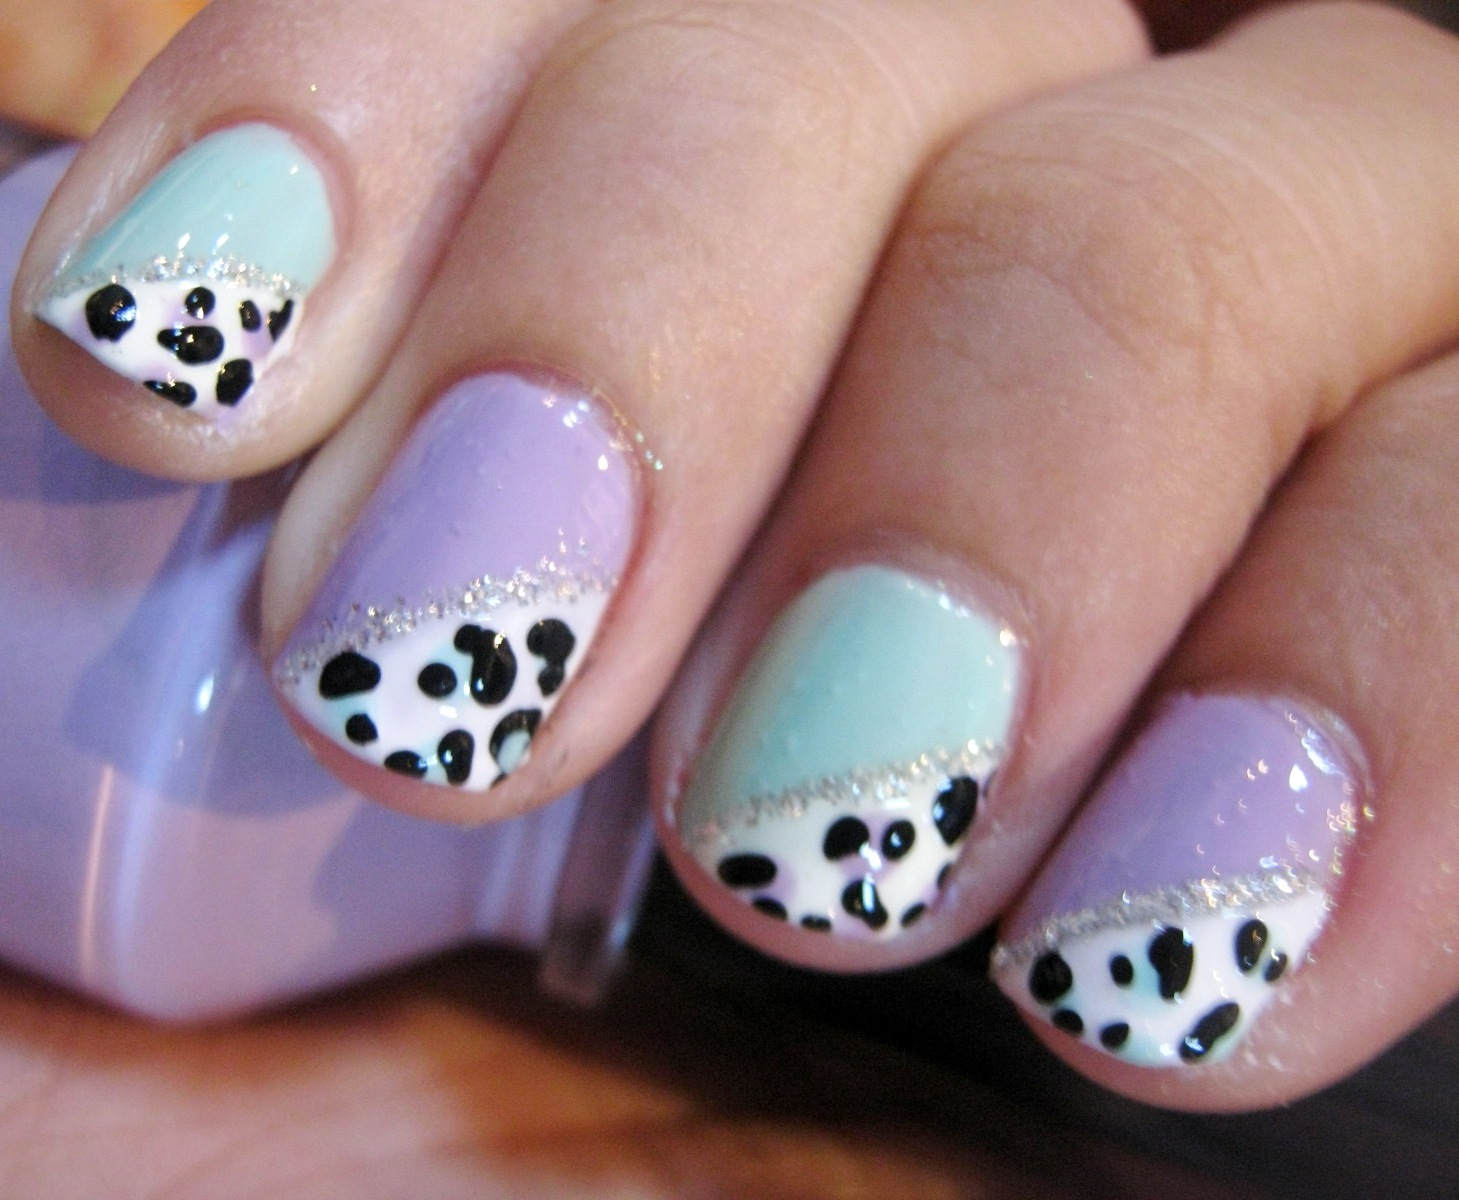 How to Do Nail Art Designs for Short Nails at Home - Romantic Love ...